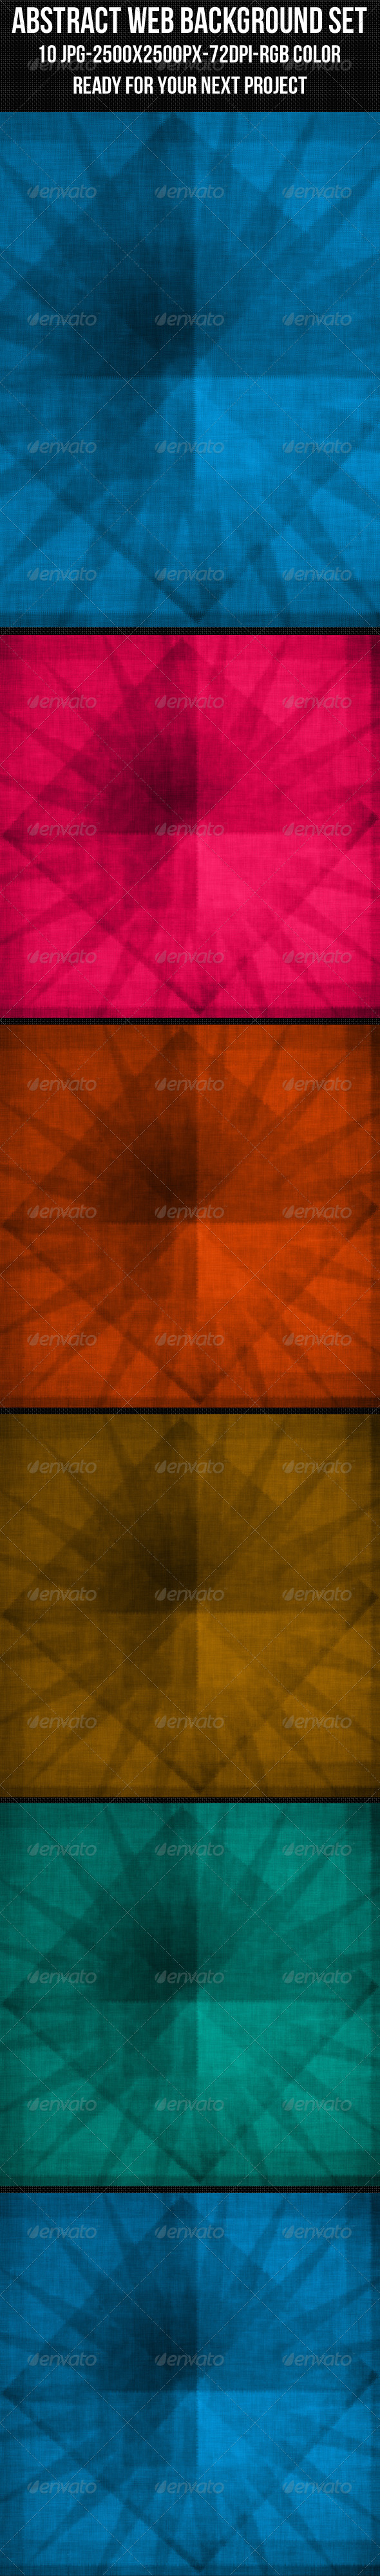 GraphicRiver Abstract Web Background Set 4476012